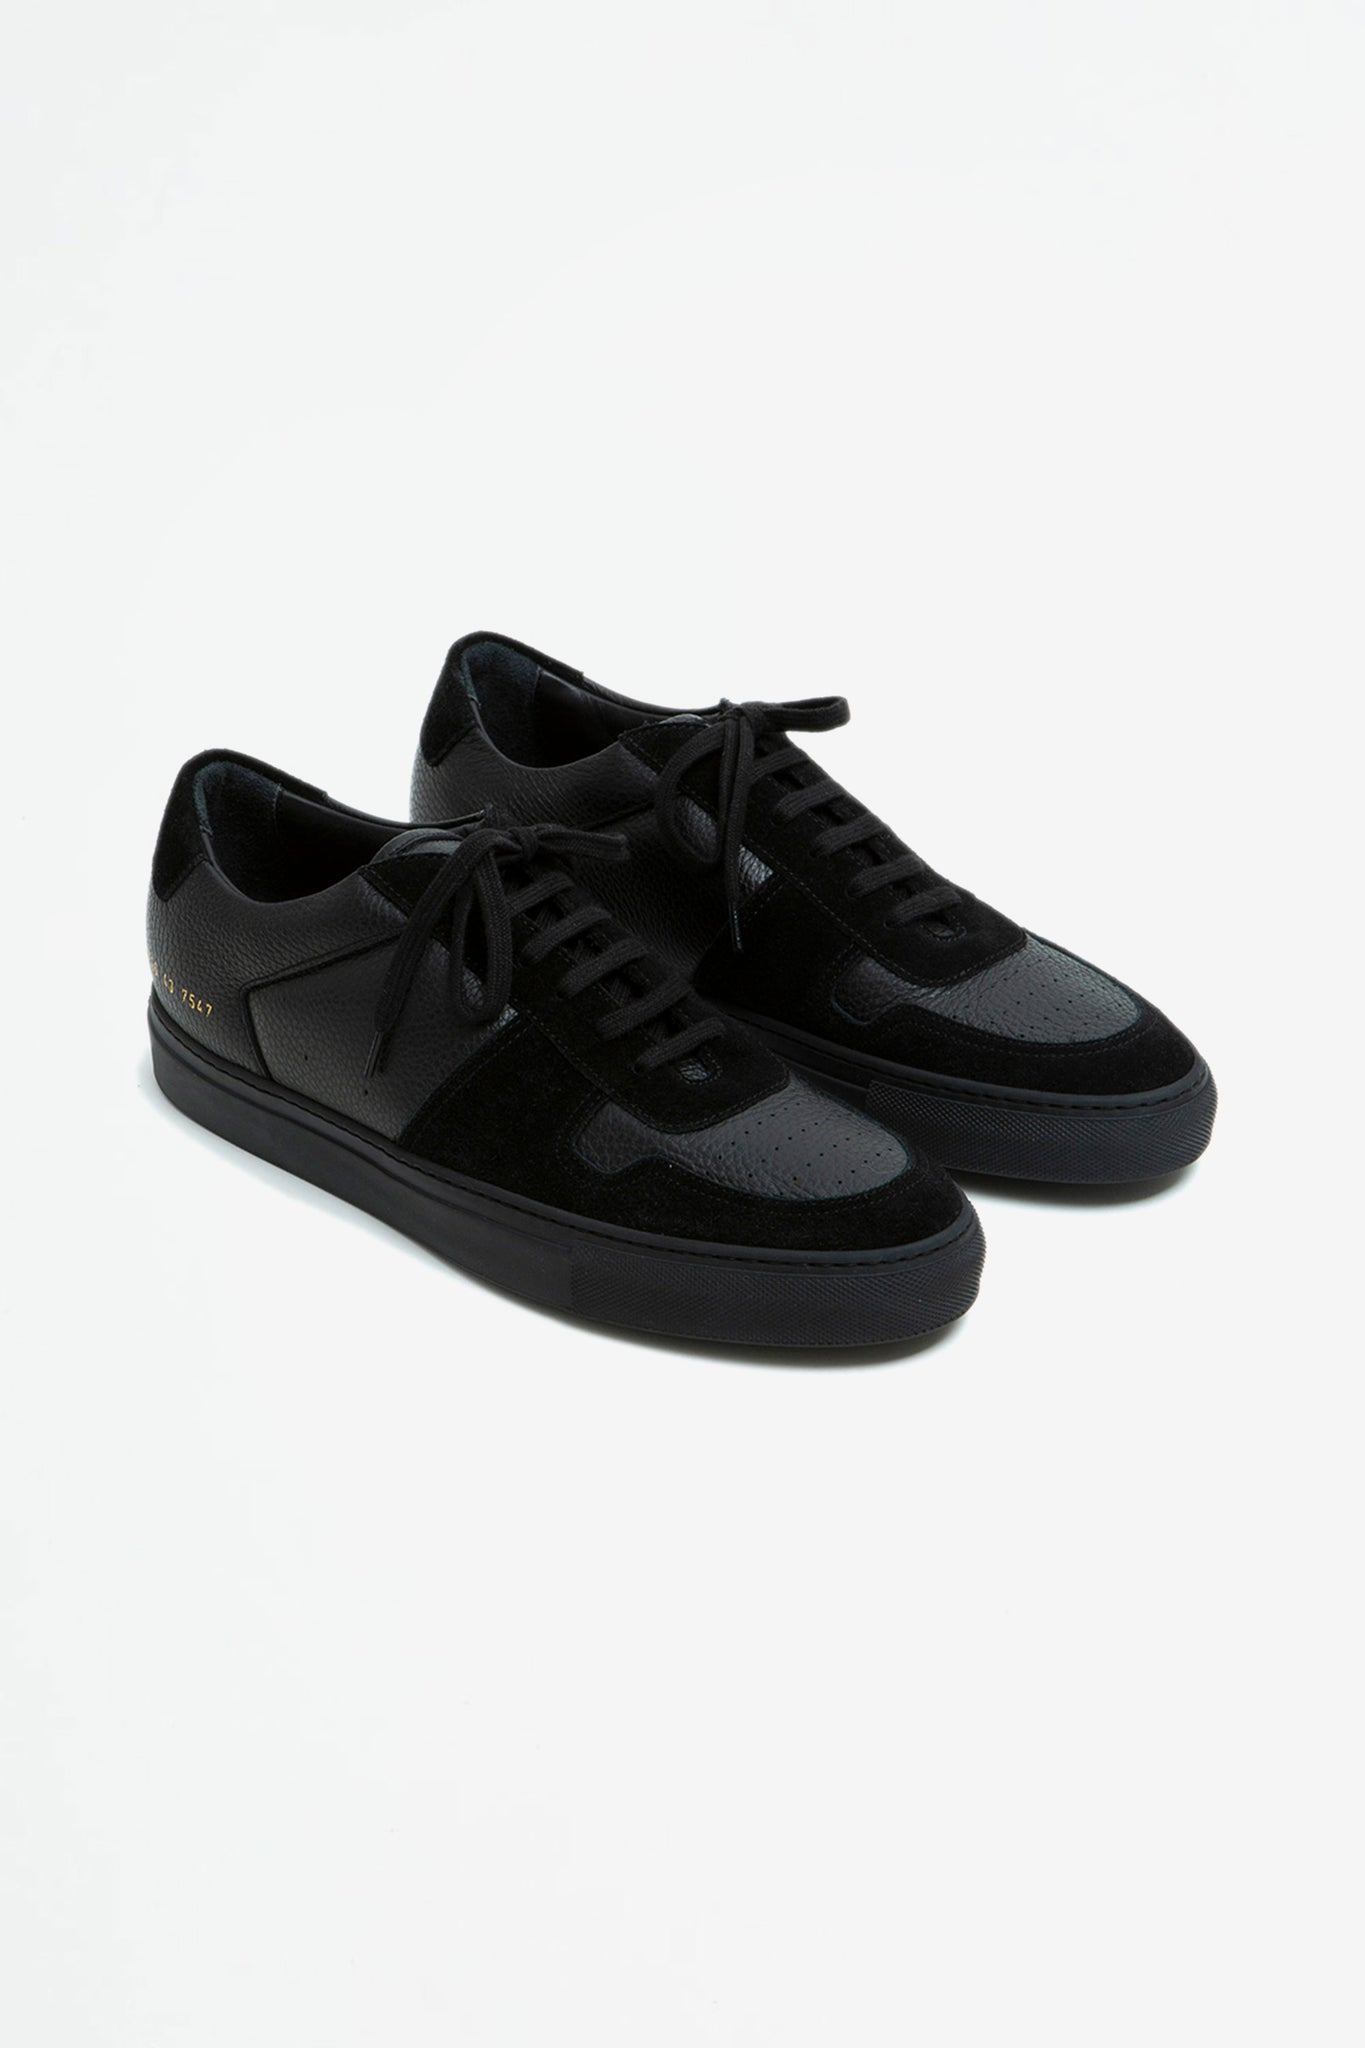 Bball Low Premium black